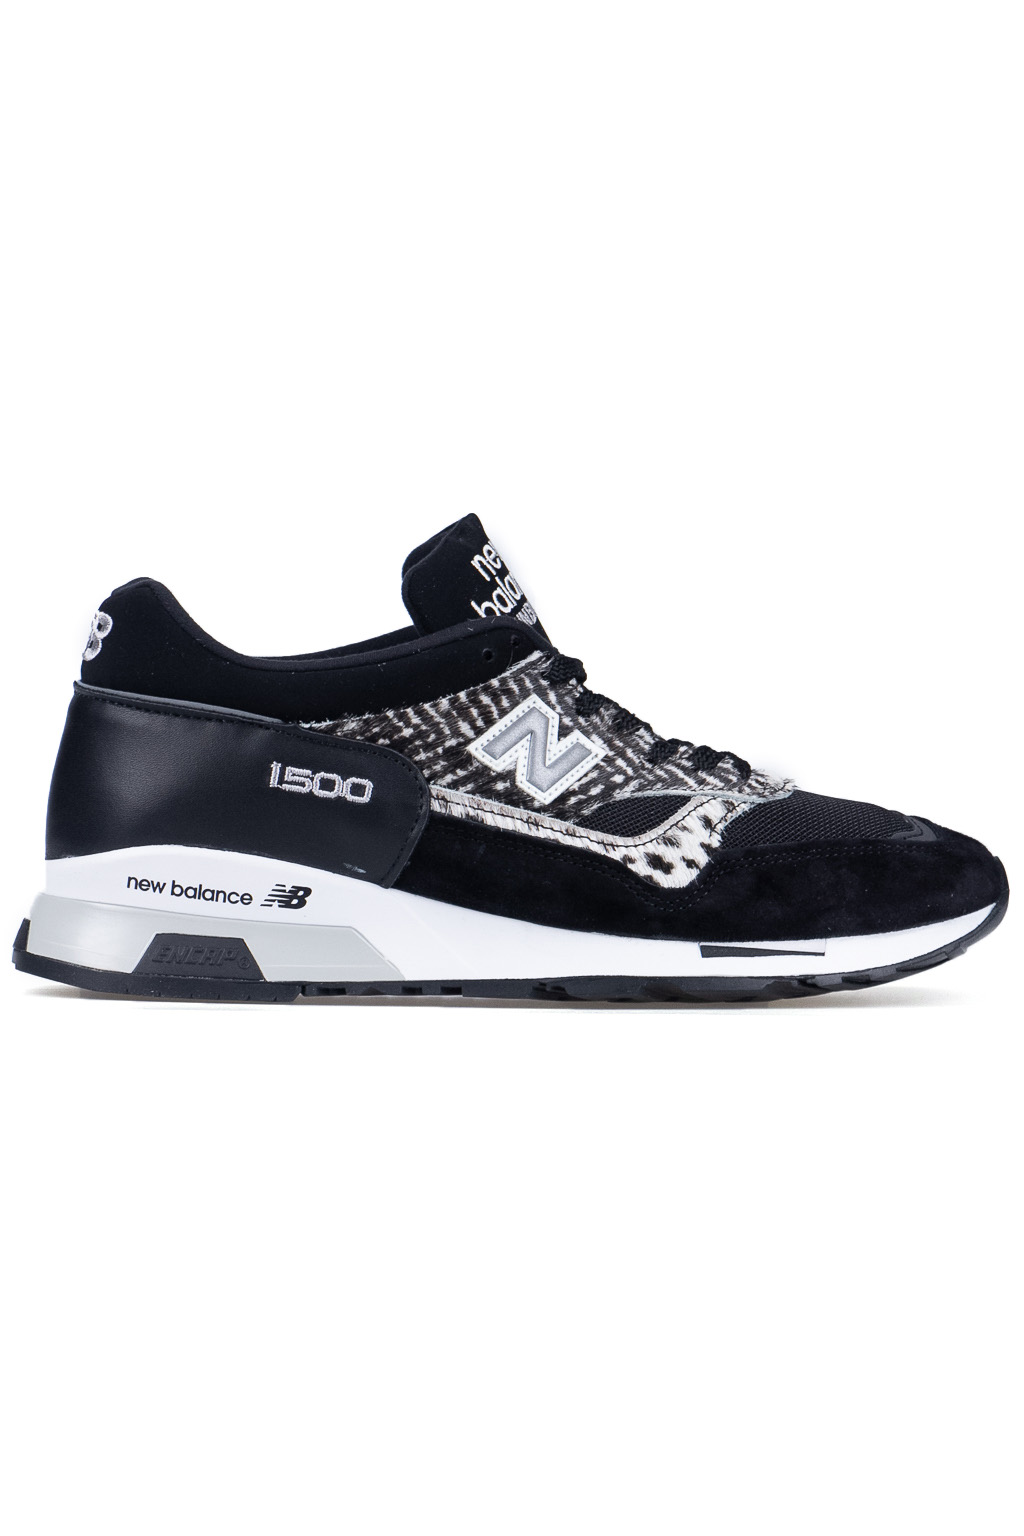 New Balance M1500ZDK - Black - Made in UK